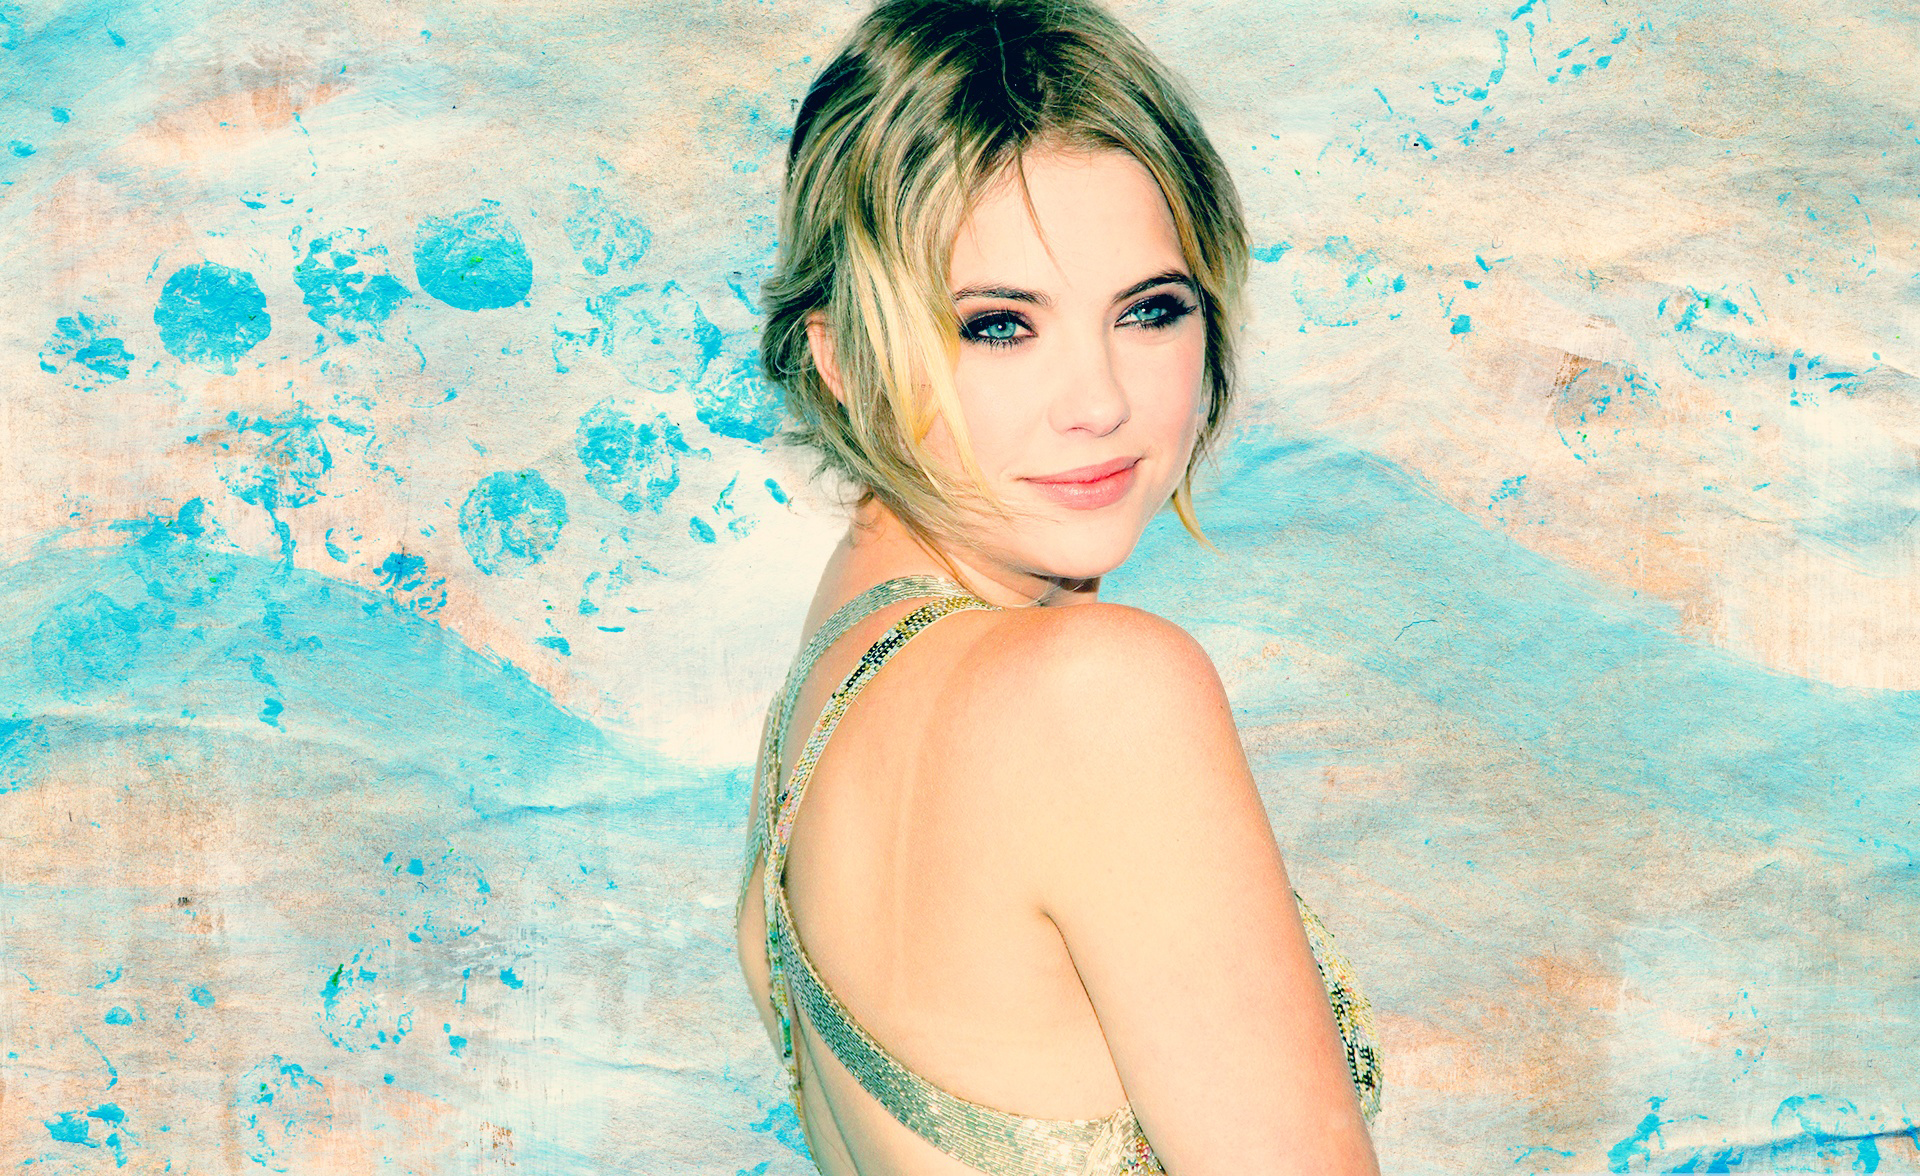 Ashley Benson Hot Hot Photo Shared By Joly | Fans Share Images